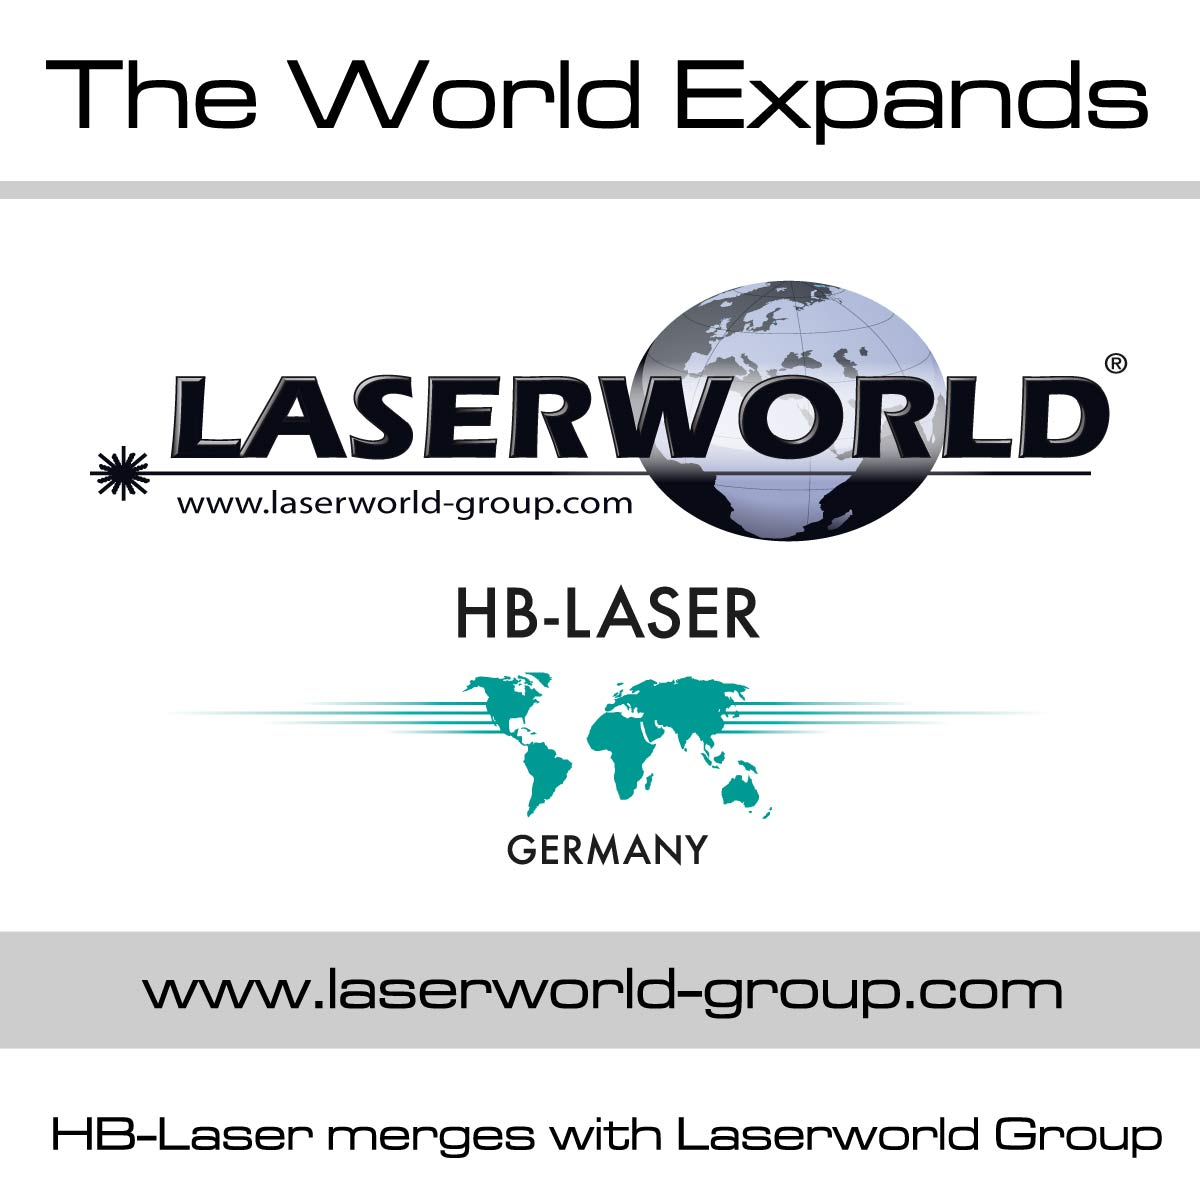 HB-Laser merges with the Laserworld Group